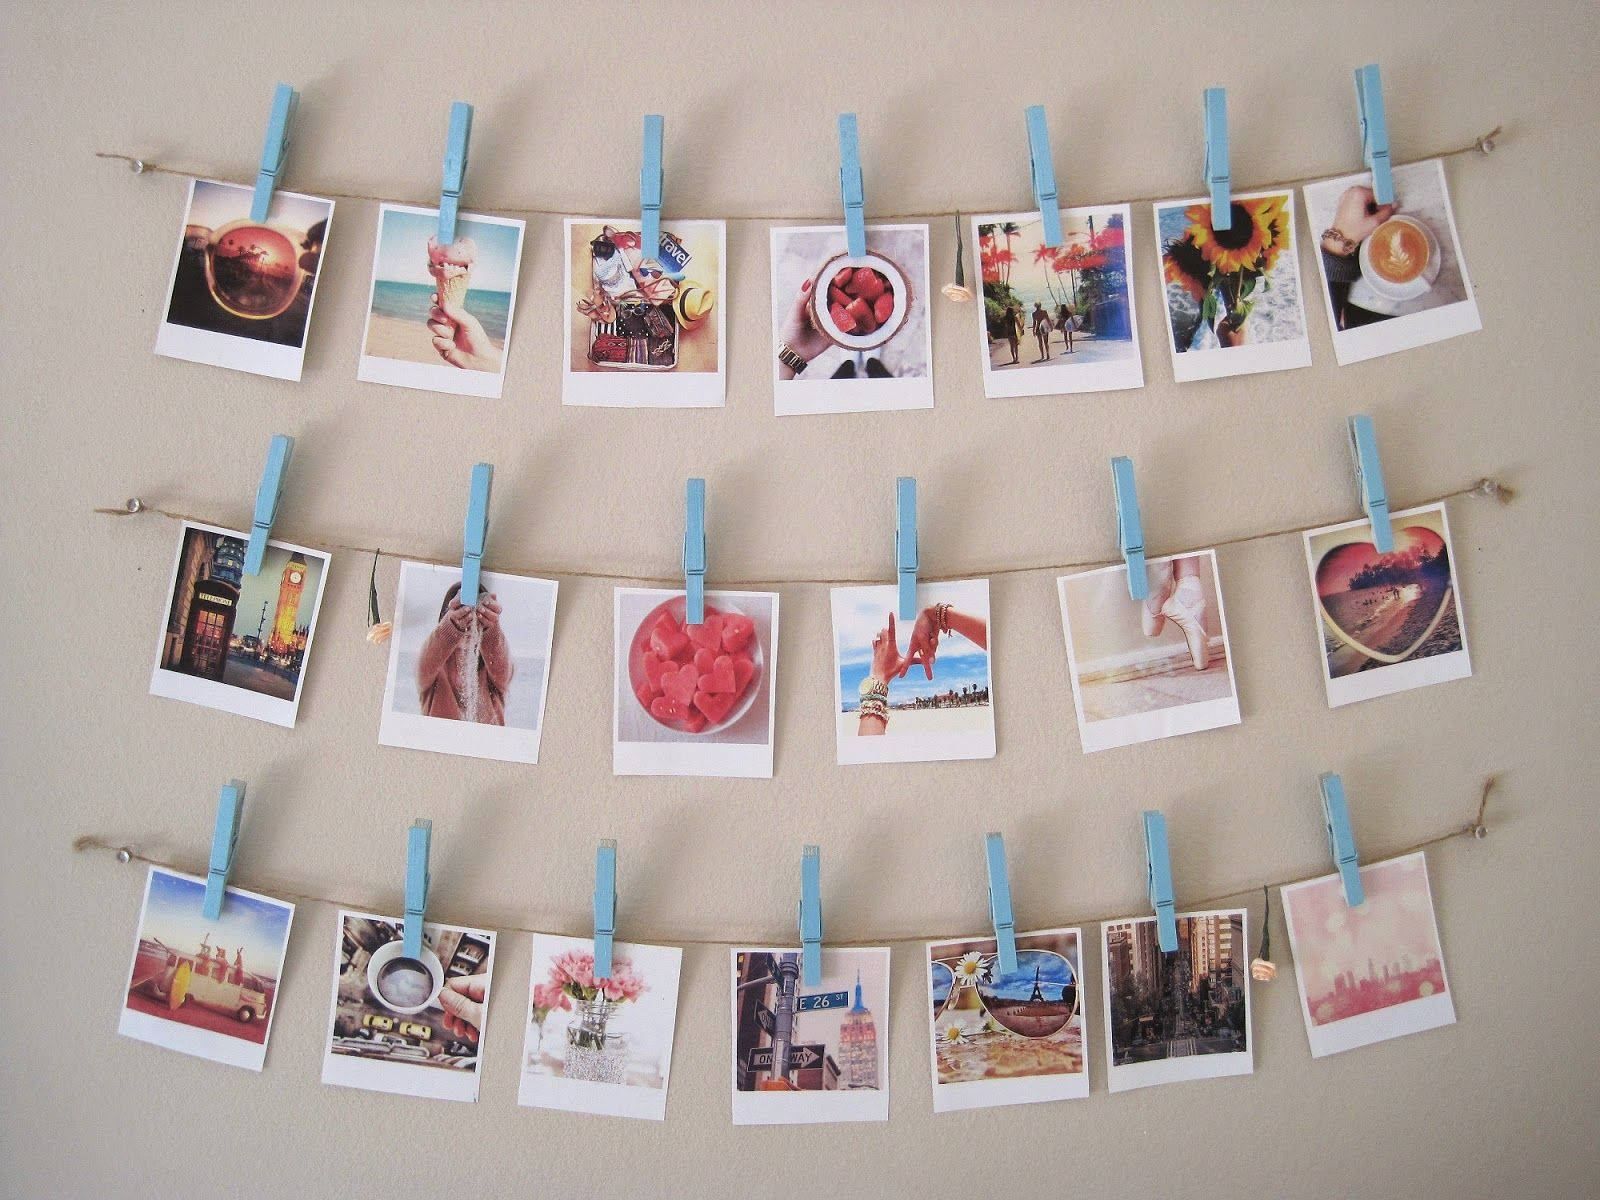 Diy wall string collage makeup by holly mei room decor diy room decor polaroid collage - Porte photo pince ...